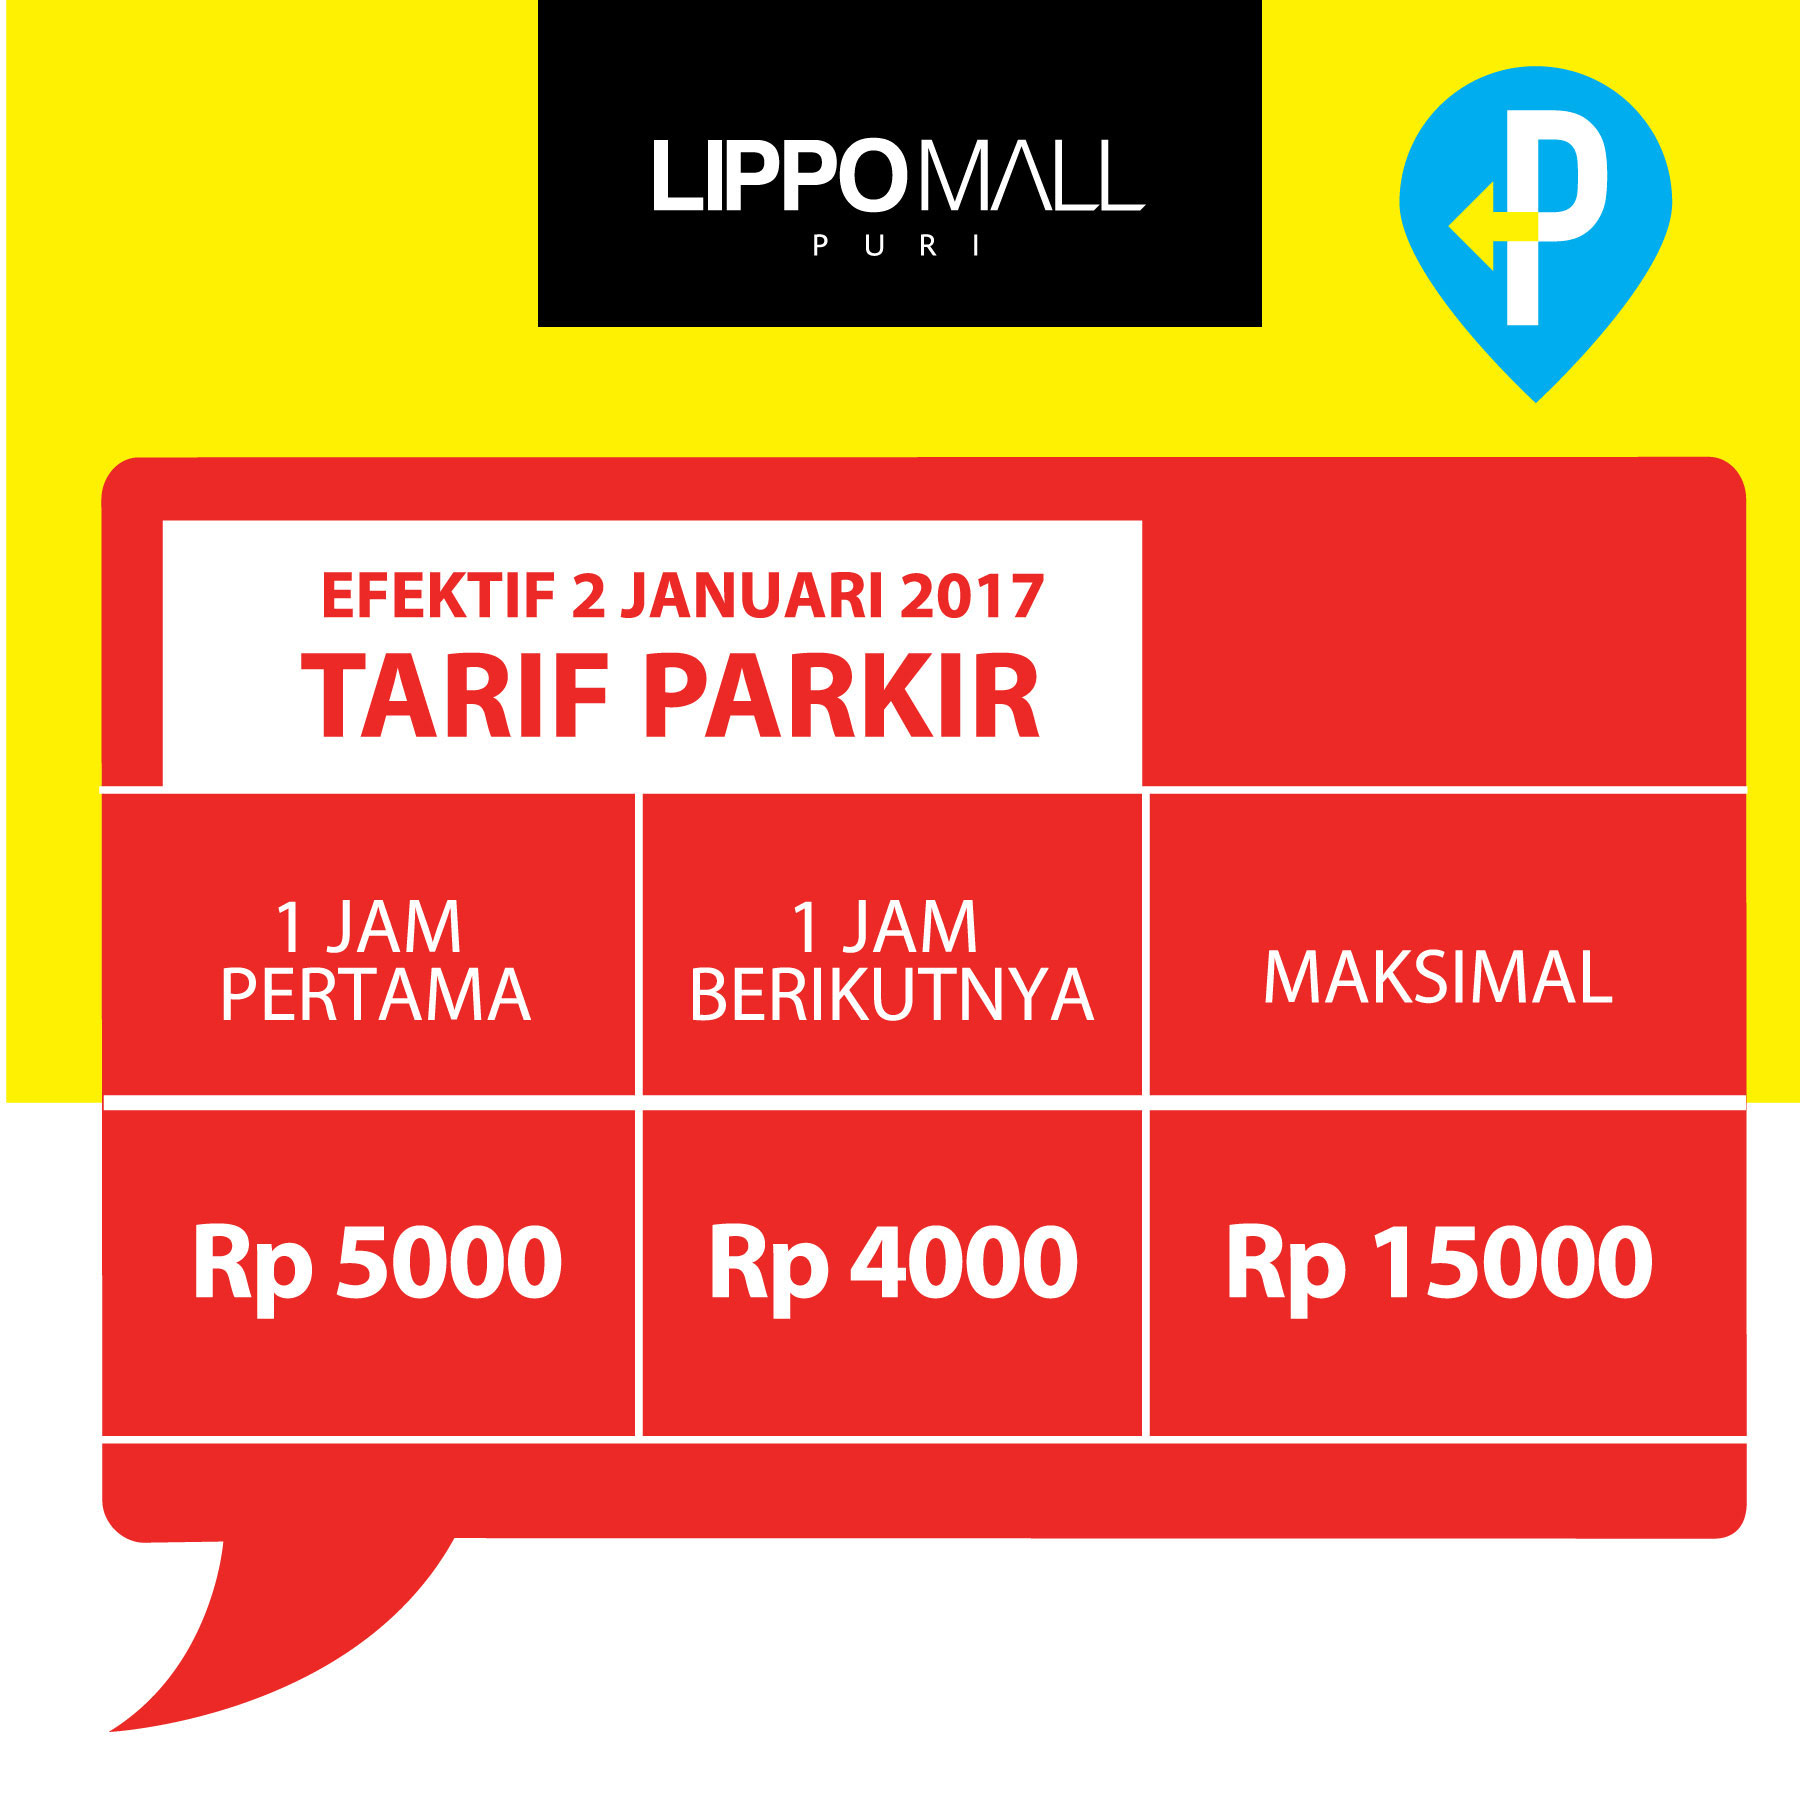 parking payment station in lippo mall puri st. moritz